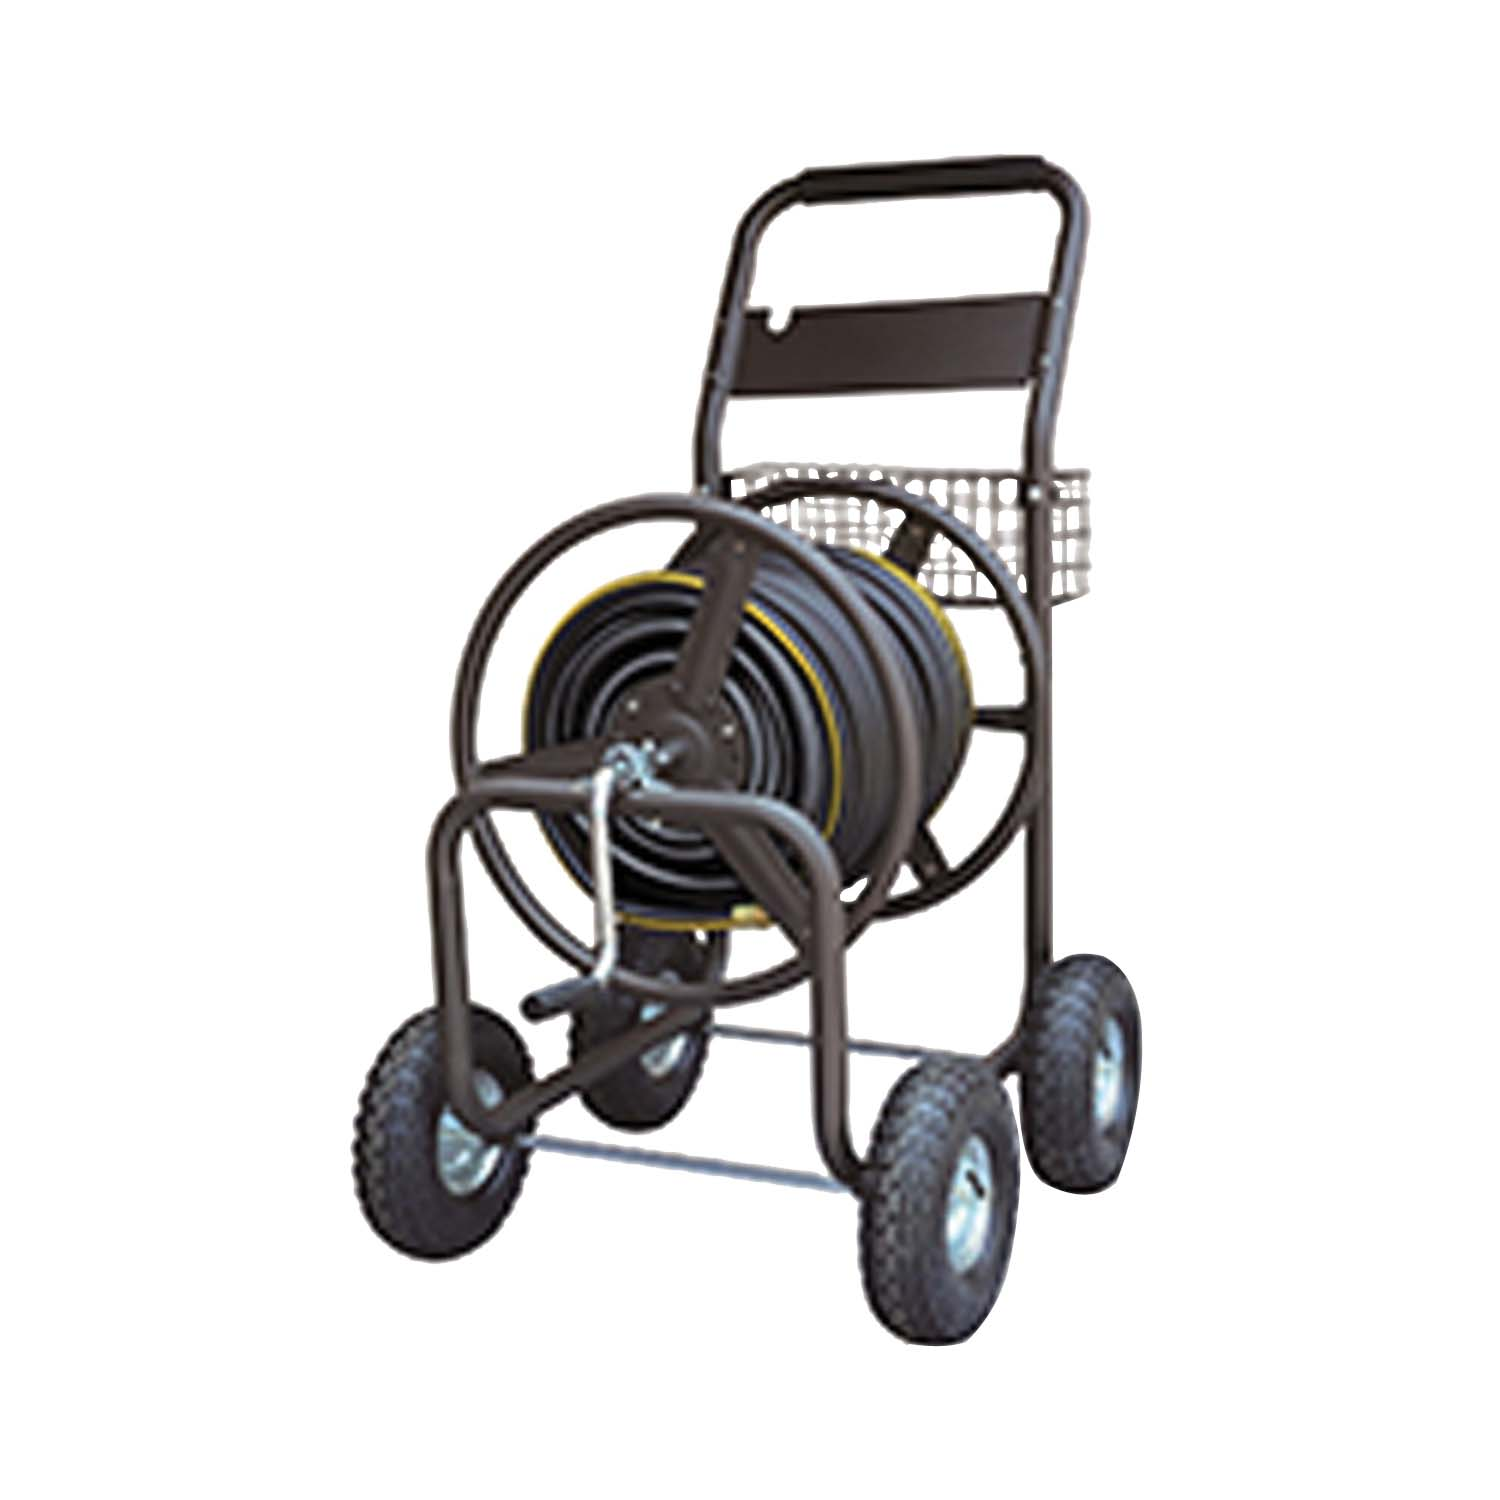 Picture of Landscapers Select TC4703 Hose Reel Cart, 5/8 in Hose, 400 ft of 5/8 in Hose, Steel